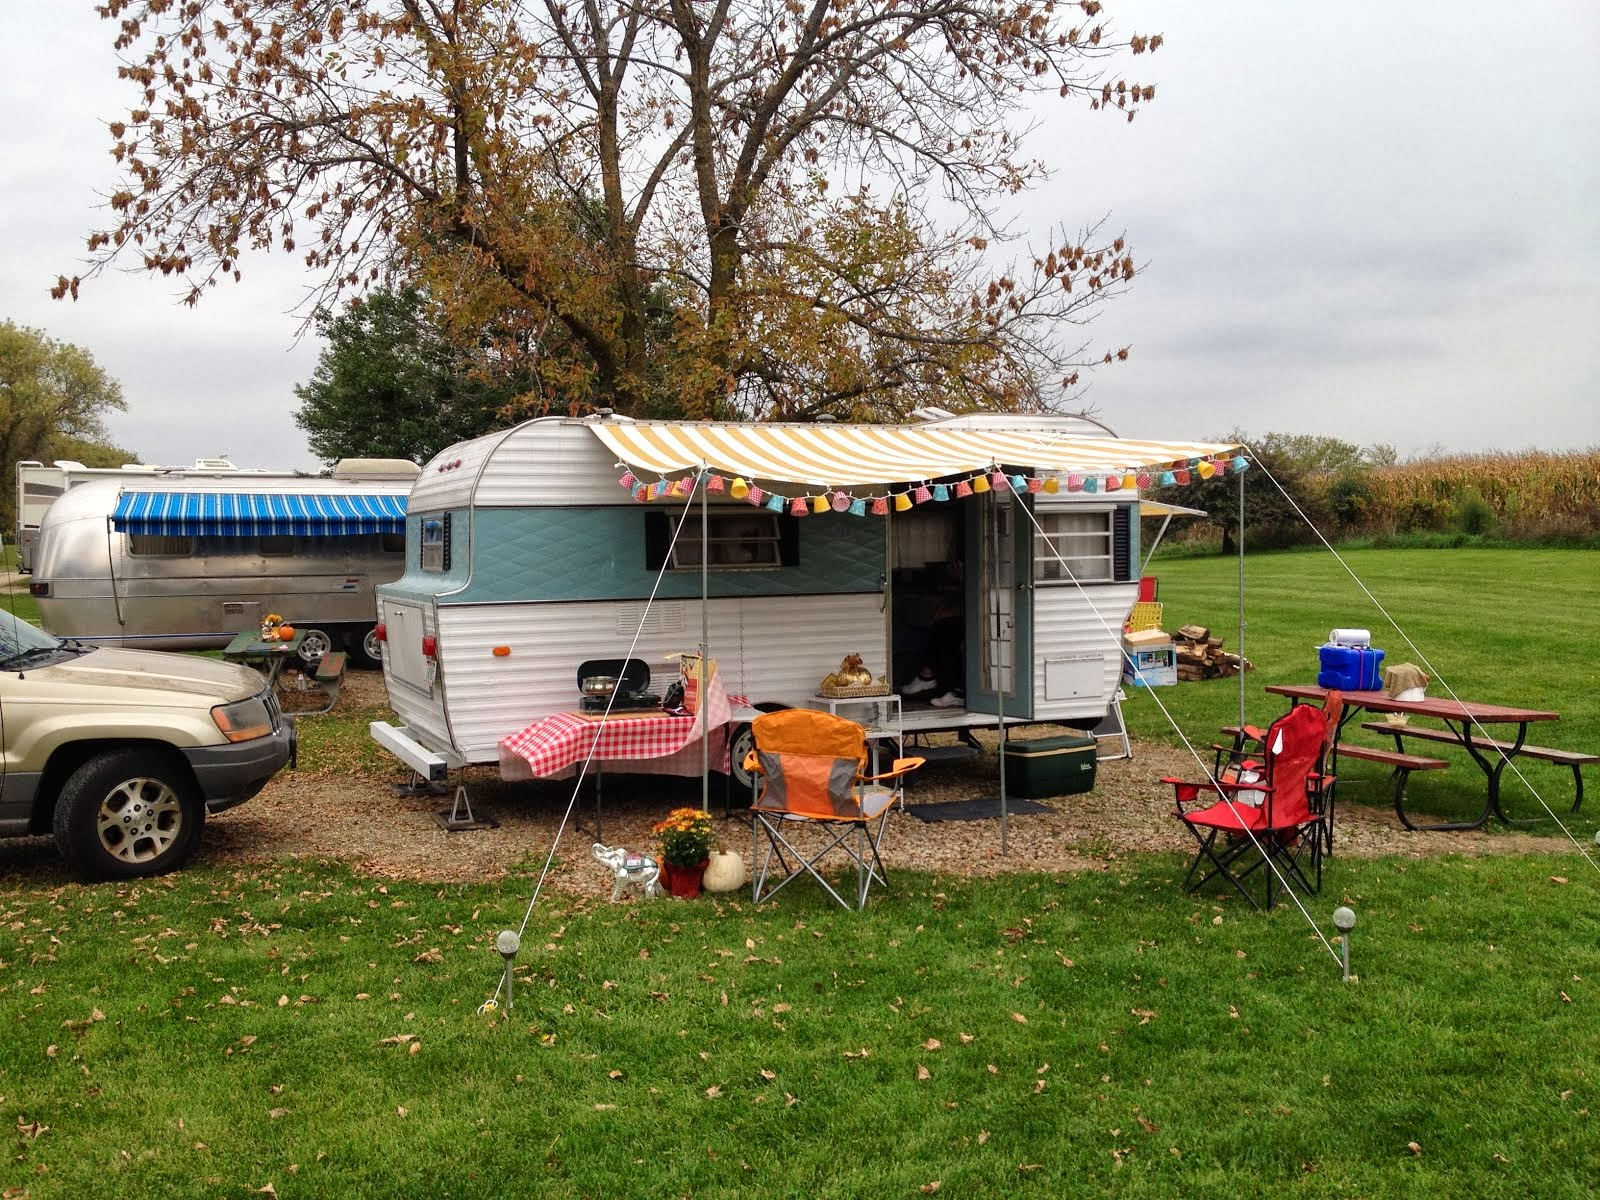 2016 VOLO VINTAGE TRAILER RALLY, OCTOBER 1, 2, 3 & 4, 2015